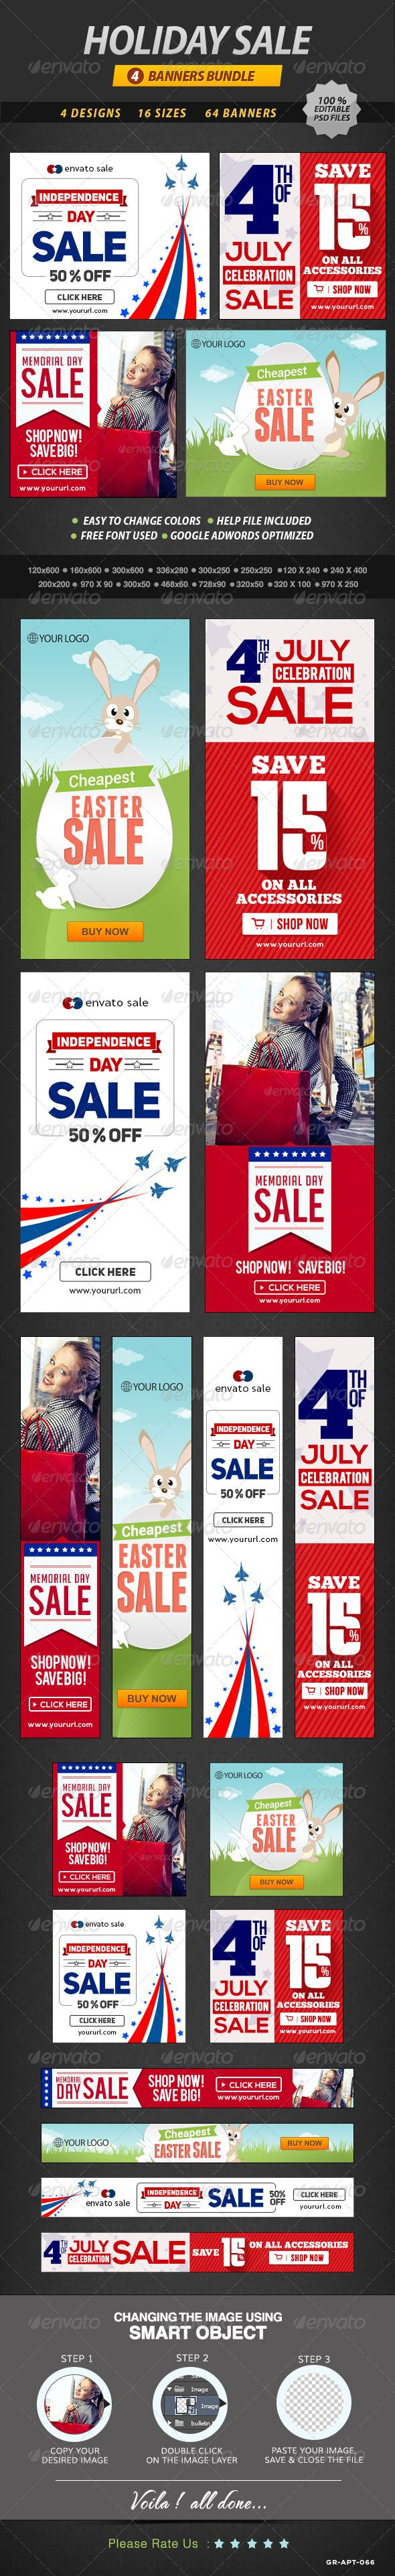 Holiday Sale Banner Bundle Template PSD | Buy and Download: http://graphicriver.net/item/holiday-sale-banner-bundle-4-sets/8548360?WT.ac=category_thumb&WT.z_author=doto&ref=ksioks